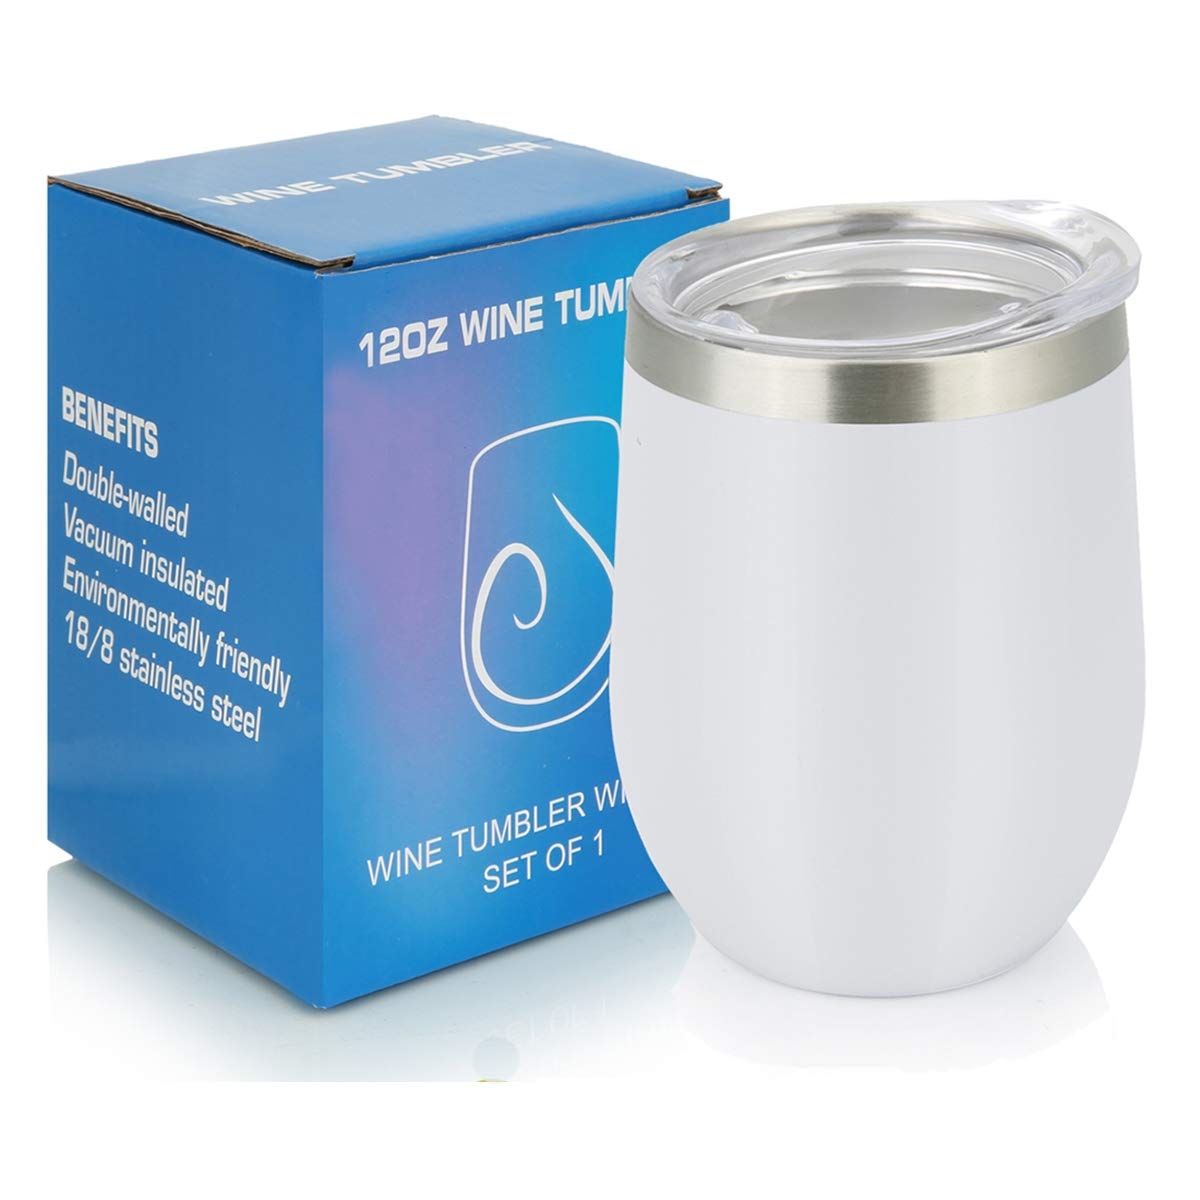 PURECUP Stainless Steel Insulated Wine Tumbler With Lid12 ozDouble Wall Vacuum Insulated